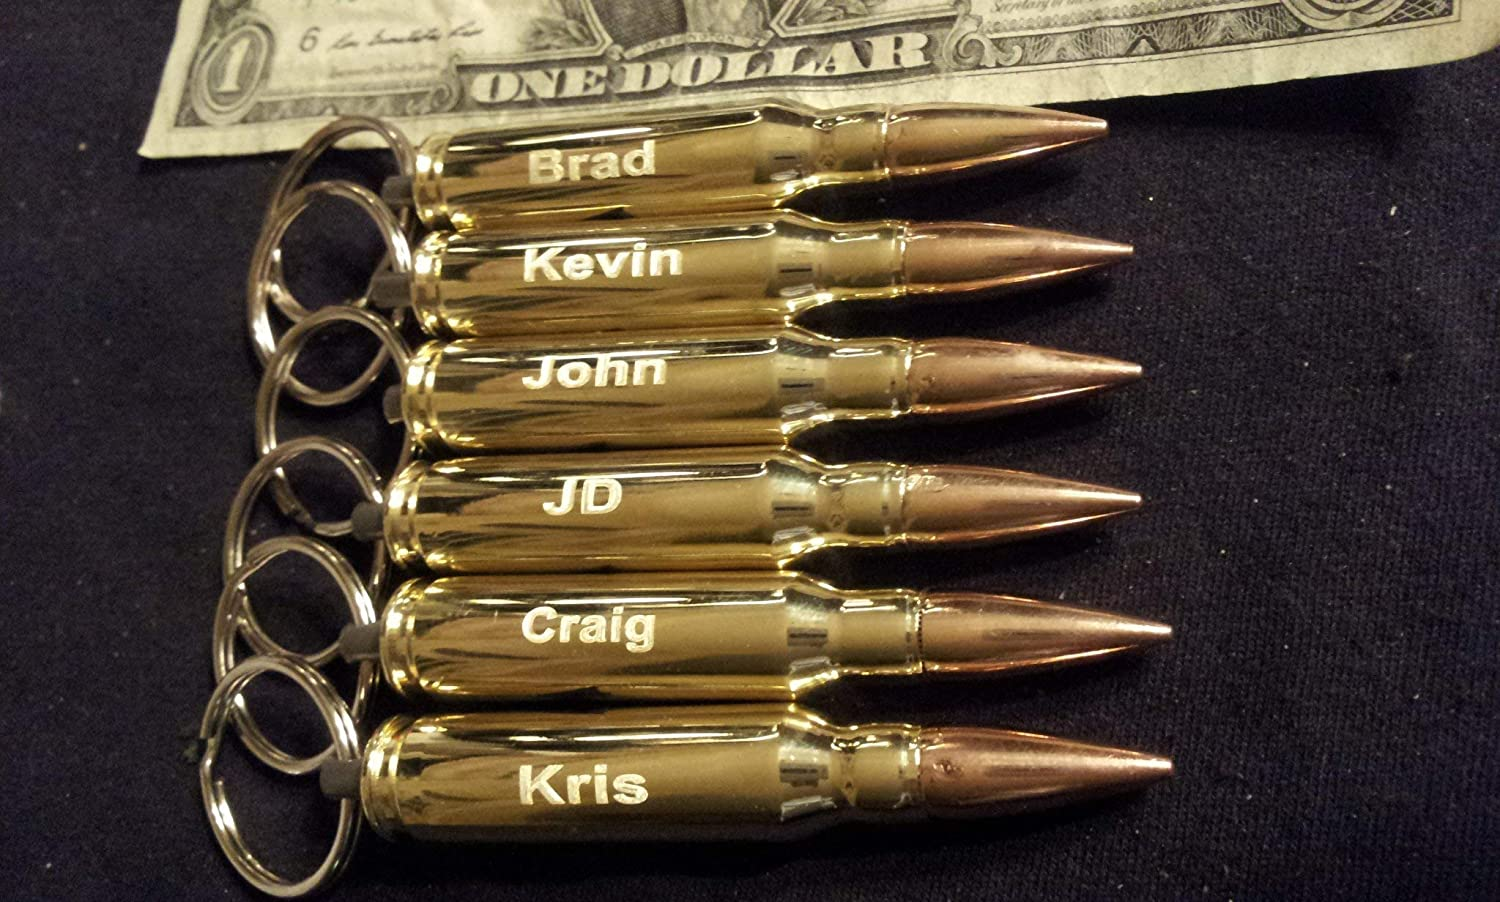 SIX Engraved small caliber .308 bullet Max 61% OFF opener key Raleigh Mall bottle chains